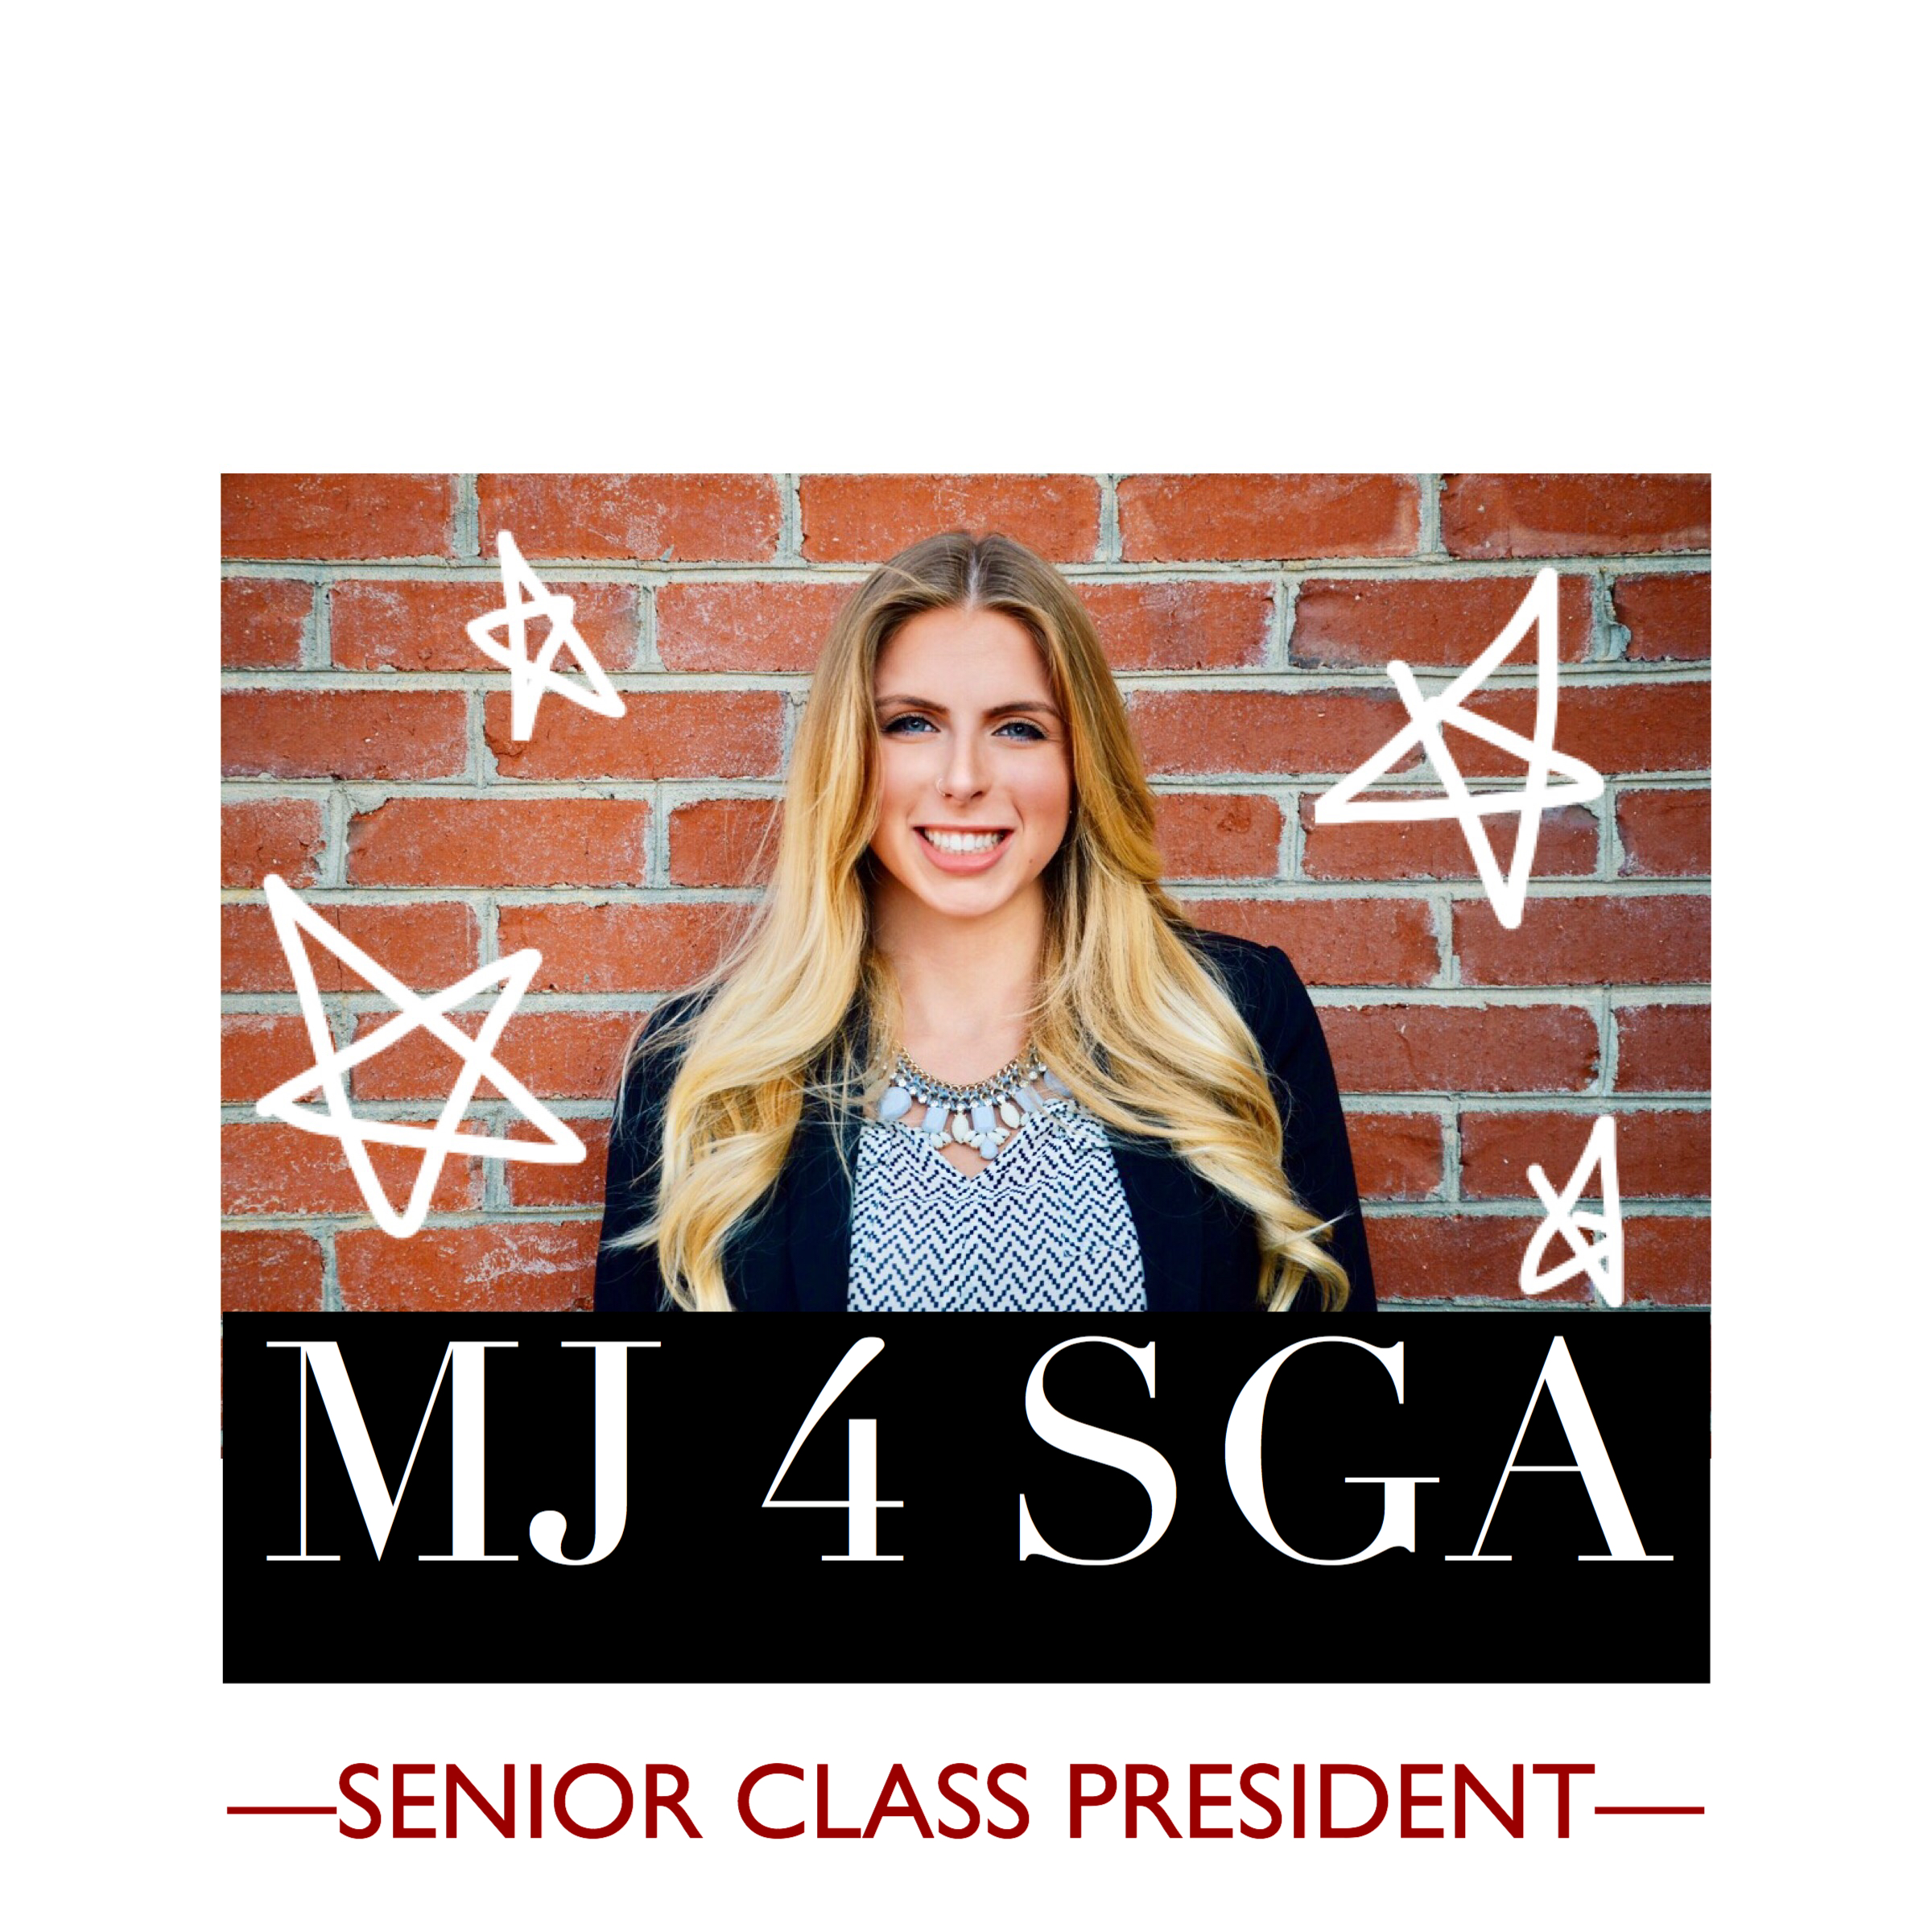 Miranda's campaign poster for the election.